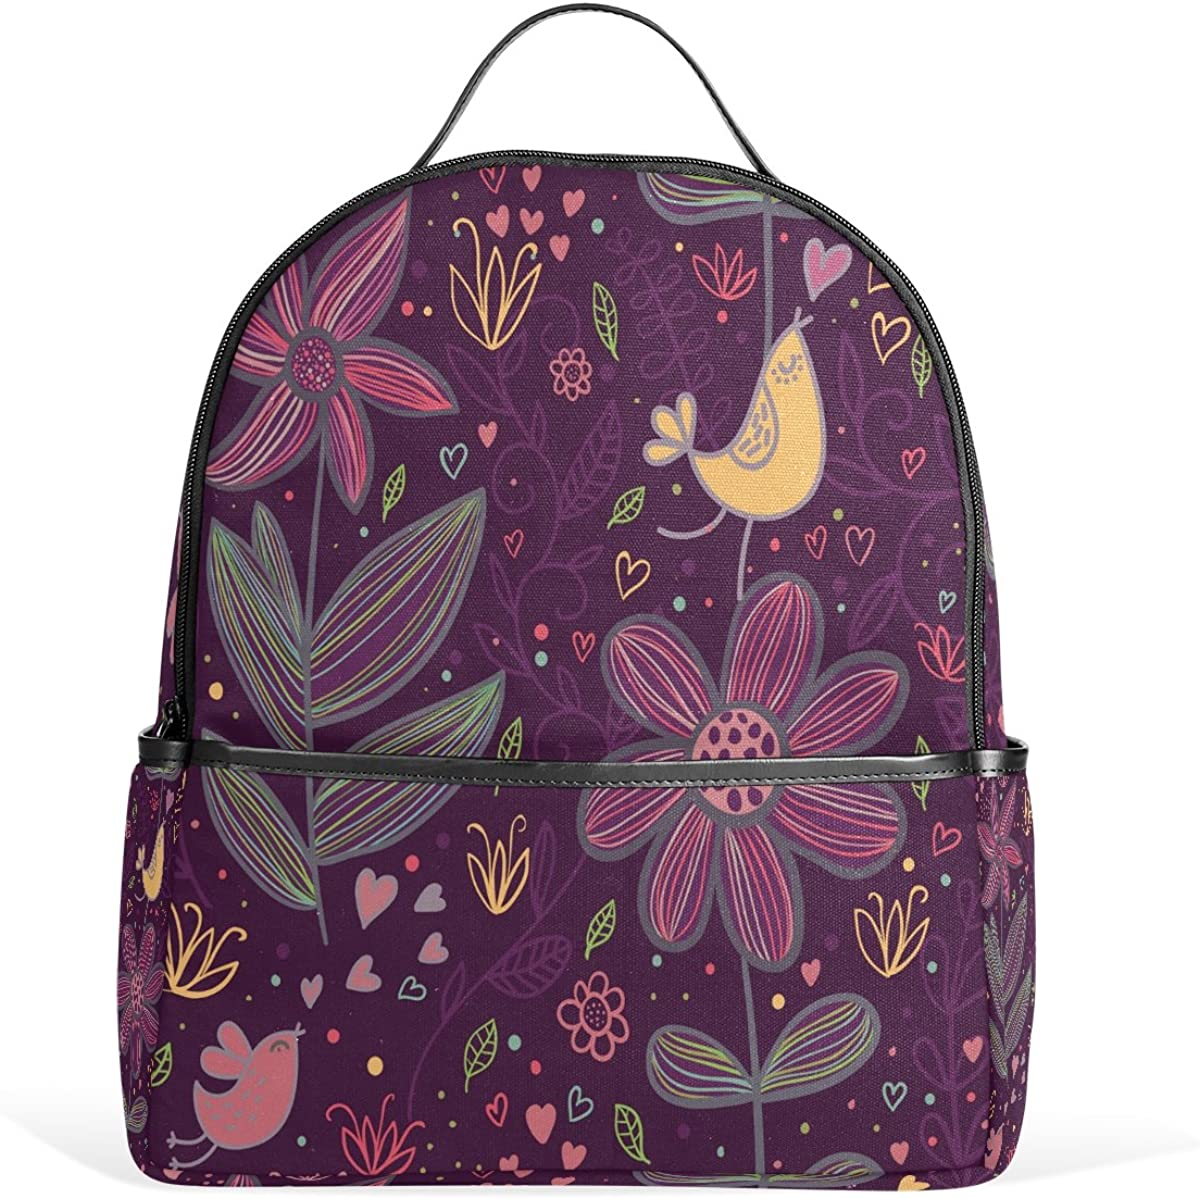 Mr.Weng Lovely Purple Markings Printed Canvas Backpack For Girl and Children